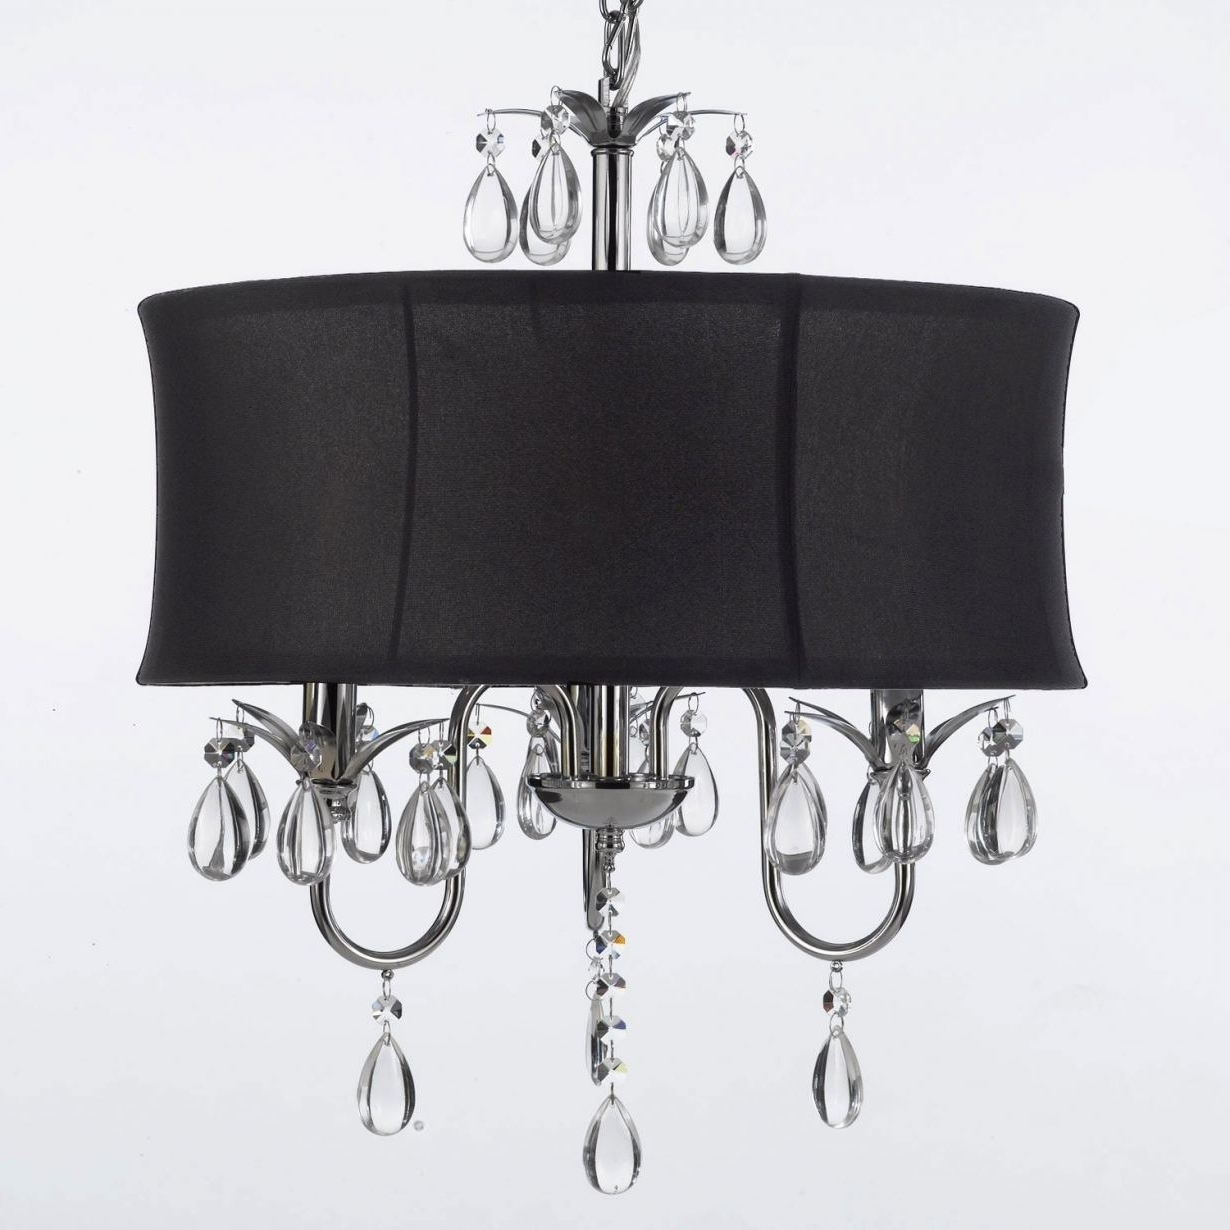 Contemporary Black Chandelier Throughout 2017 Black Crystal Chandelier Lighting #3 Modern Contemporary Black Drum (View 12 of 15)